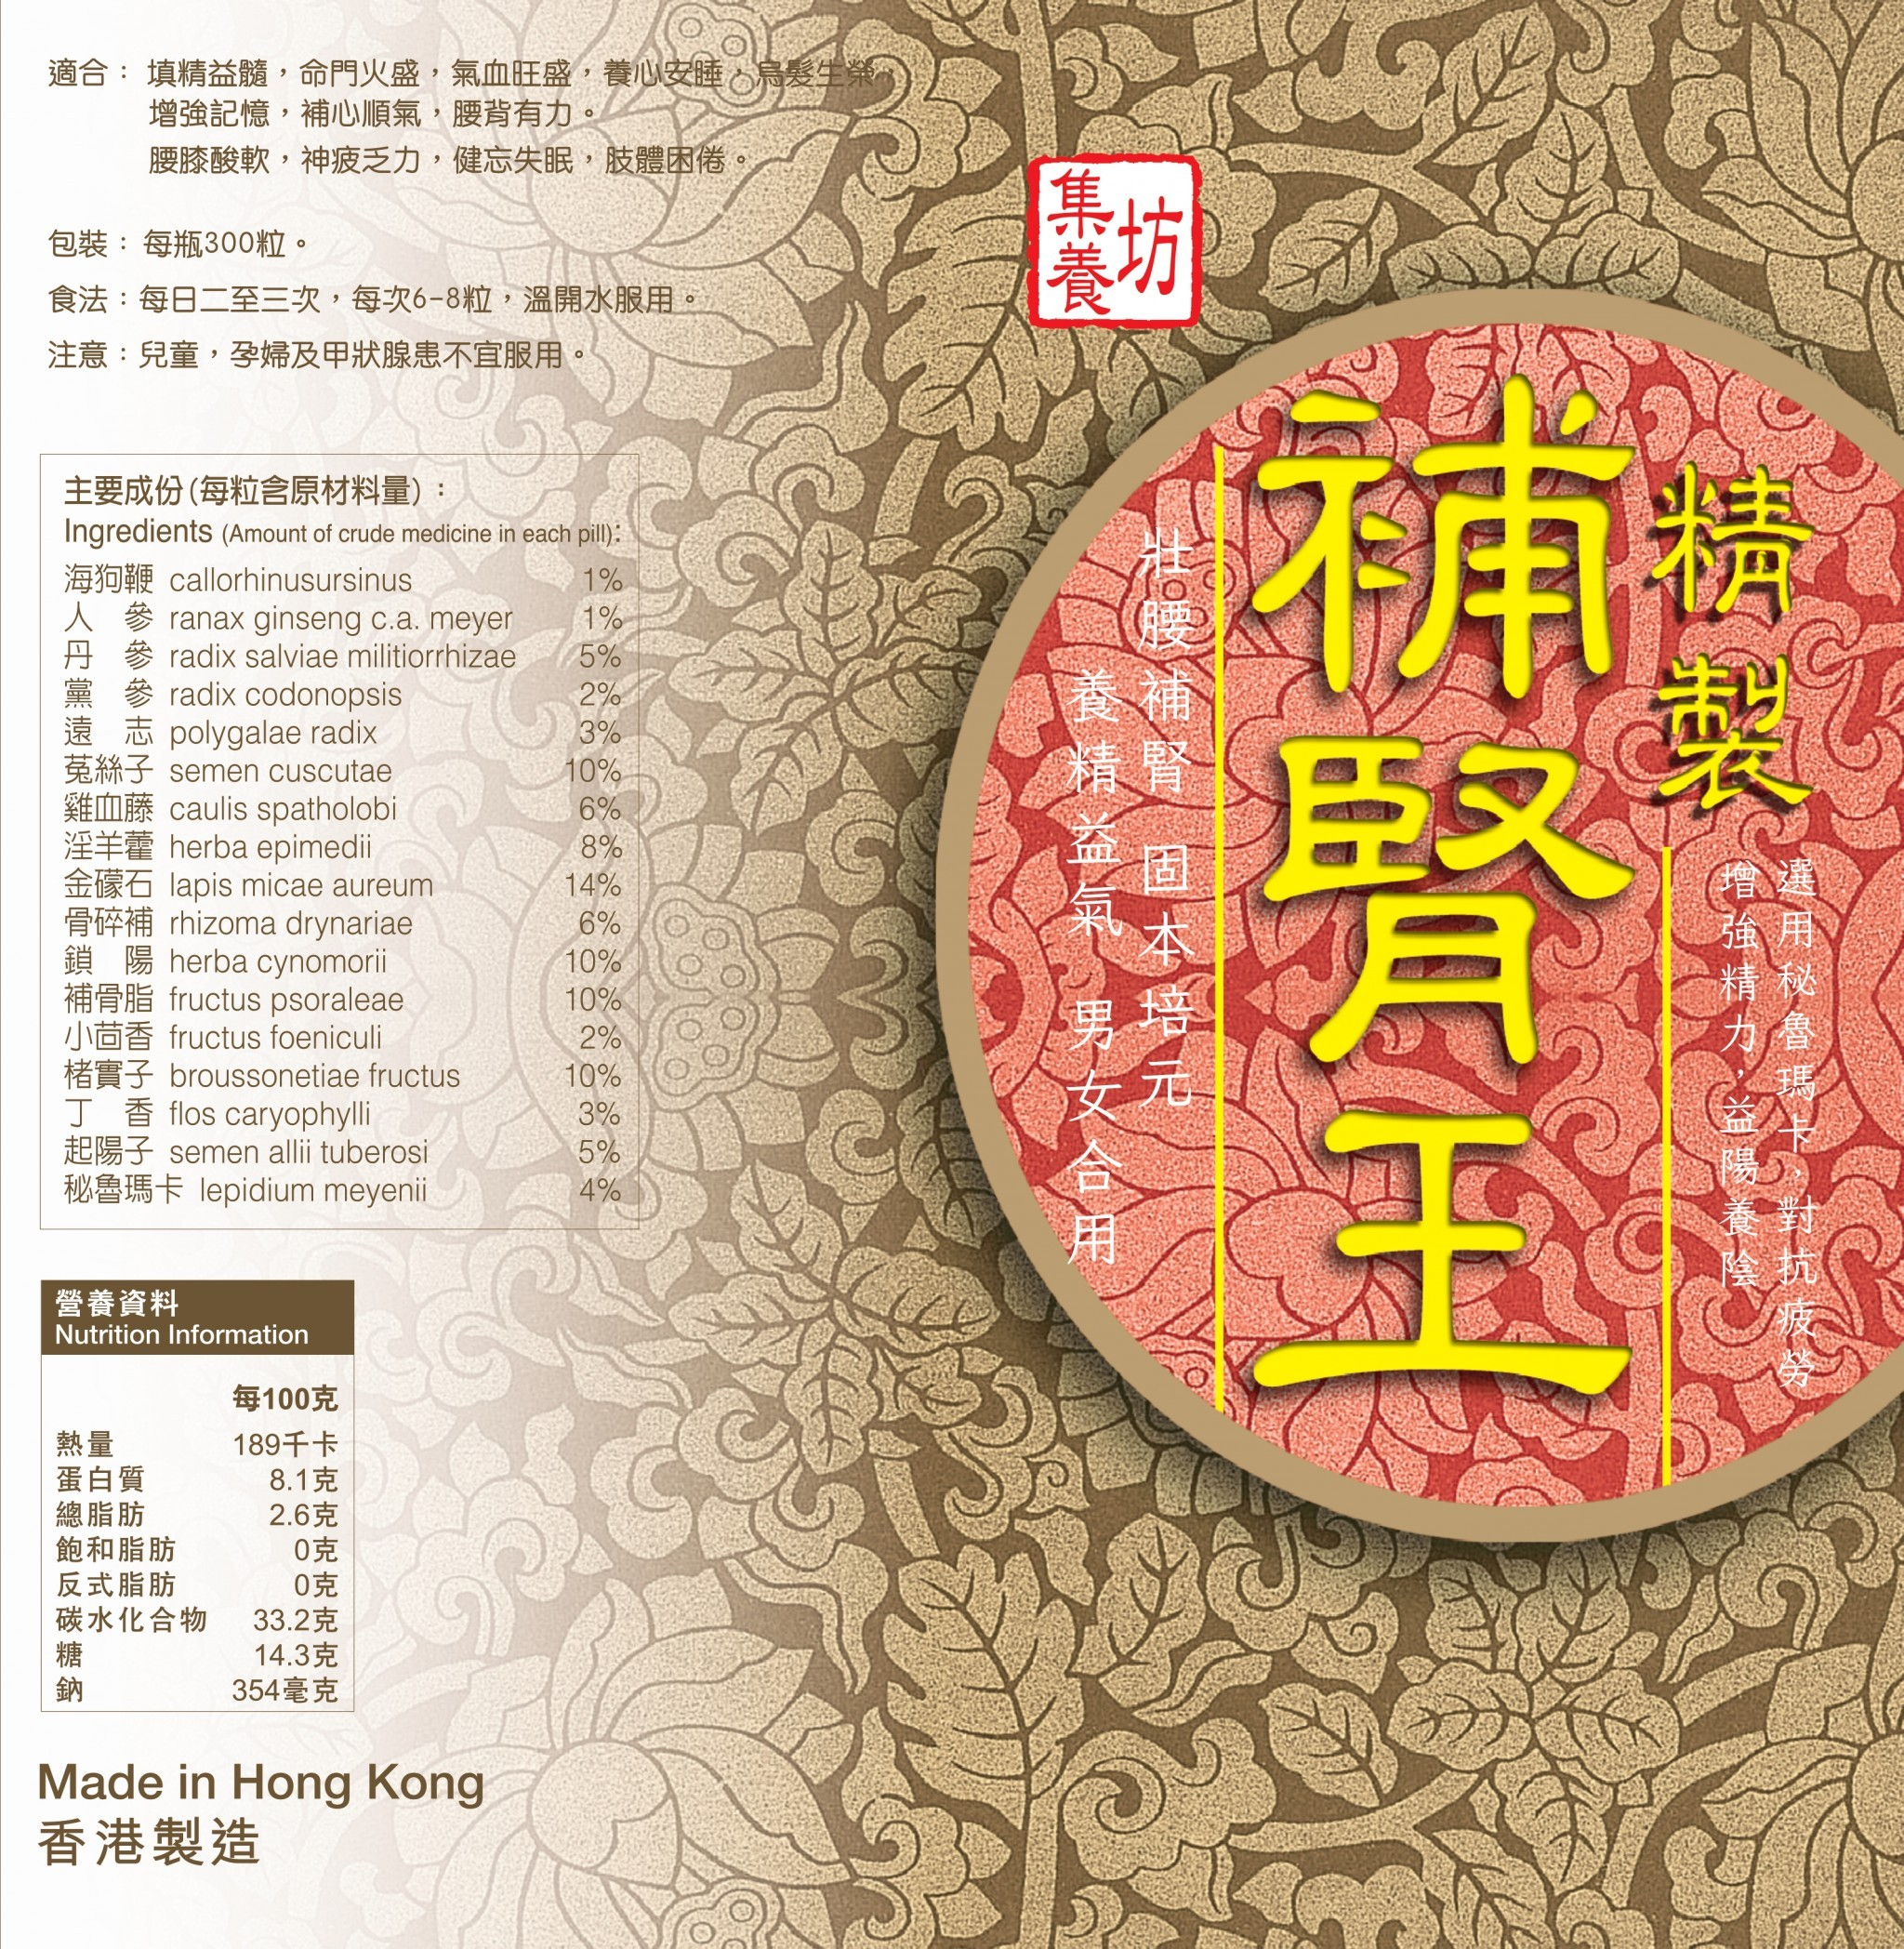 [集養坊] 補腎for website_page-0001